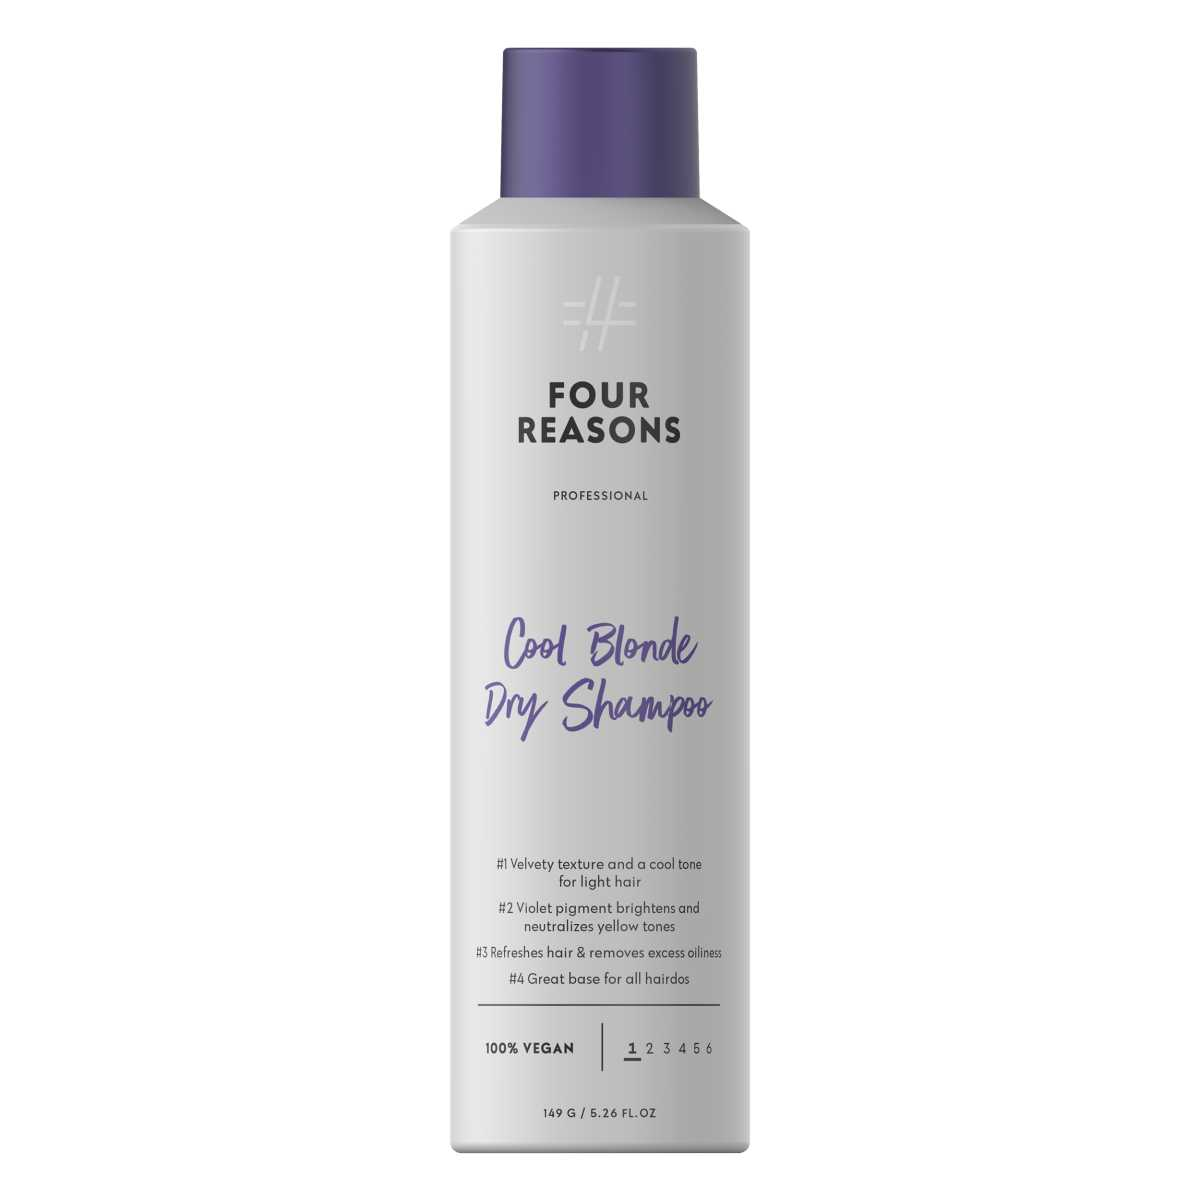 Four-Reasons-Professional-Cool-Blonde-Dry-Shampoo